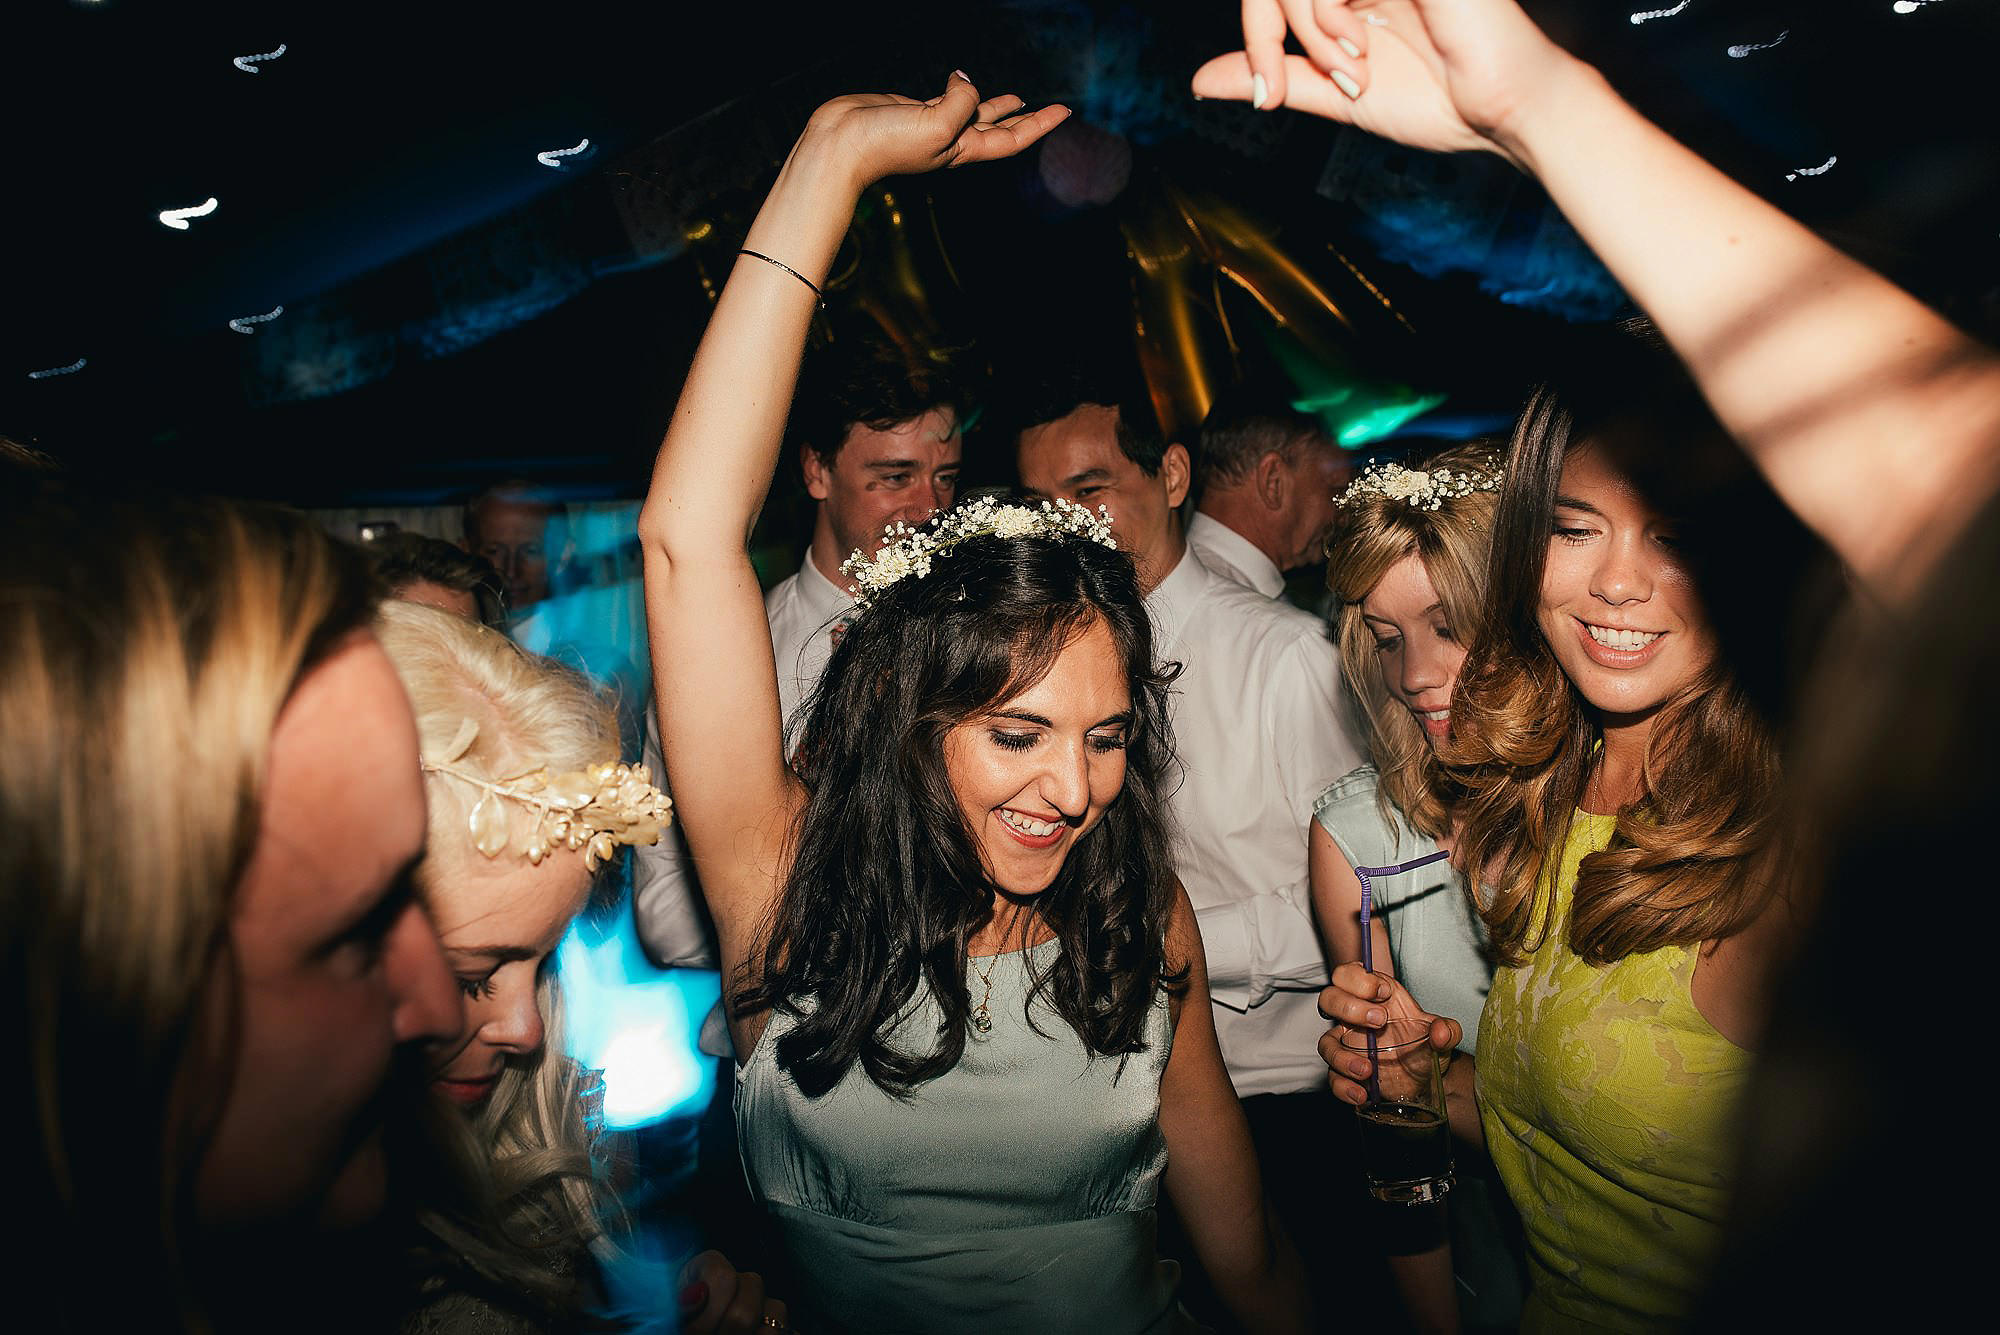 dancefloor party wedding bridesmaid